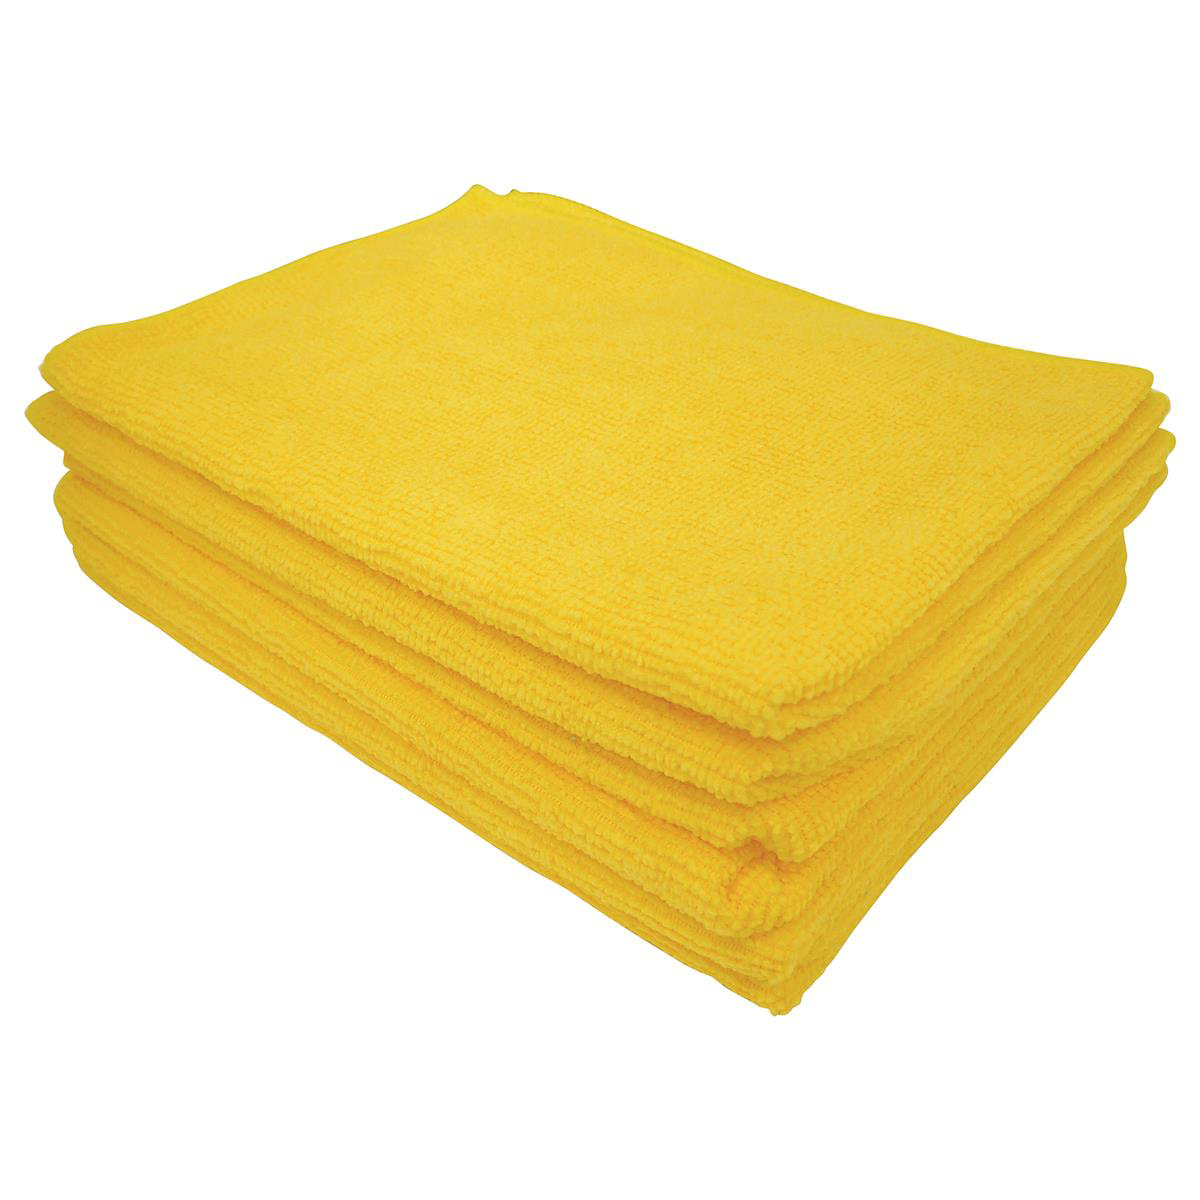 5 Star Microfibre CleaningCloth Pk6 Yell